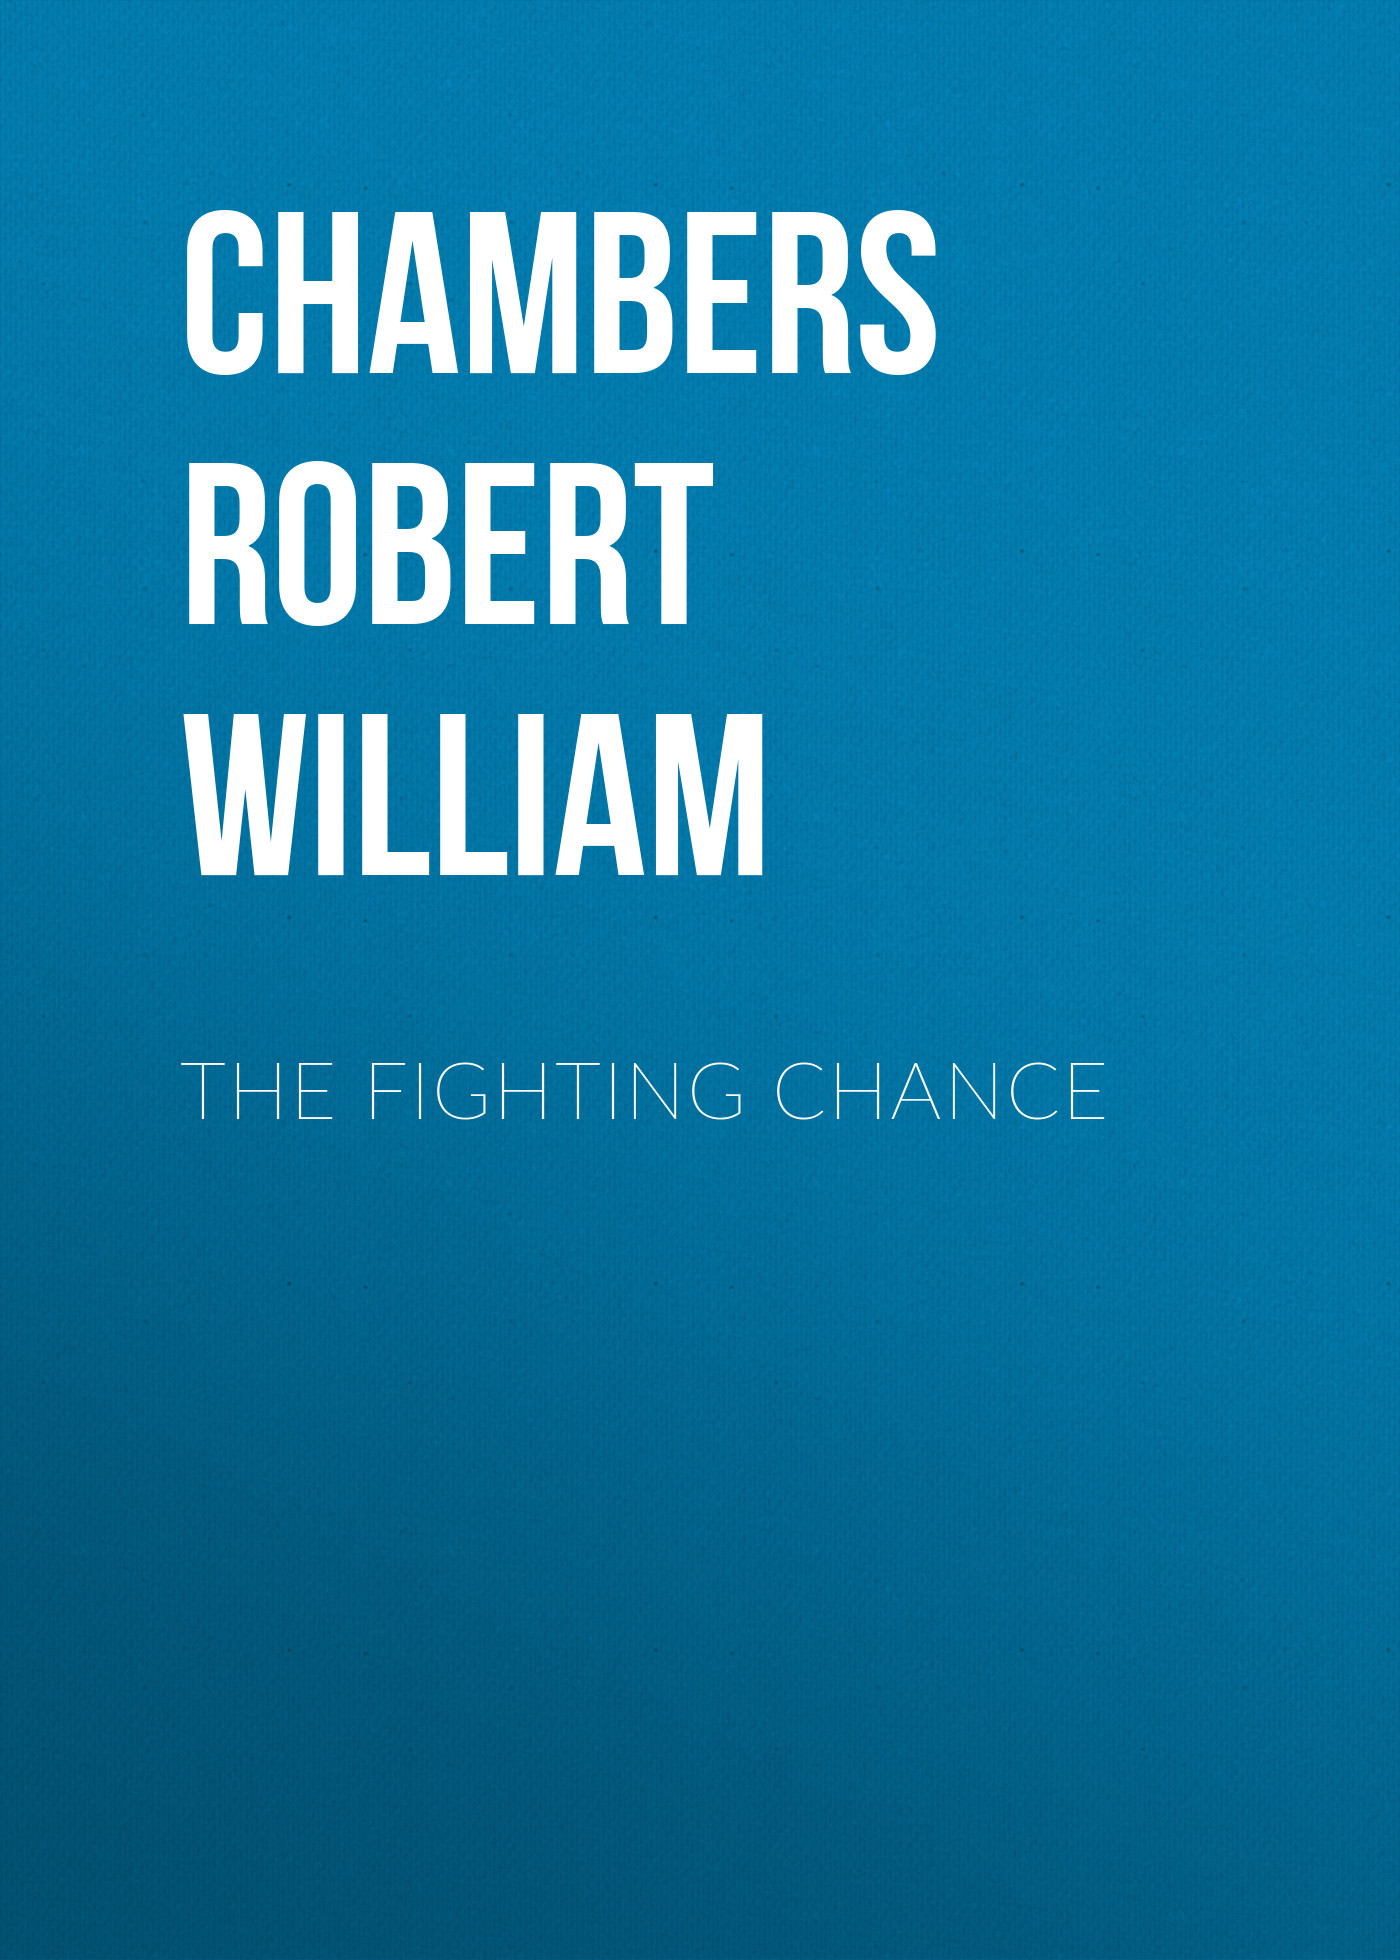 купить Chambers Robert William The Fighting Chance в интернет-магазине